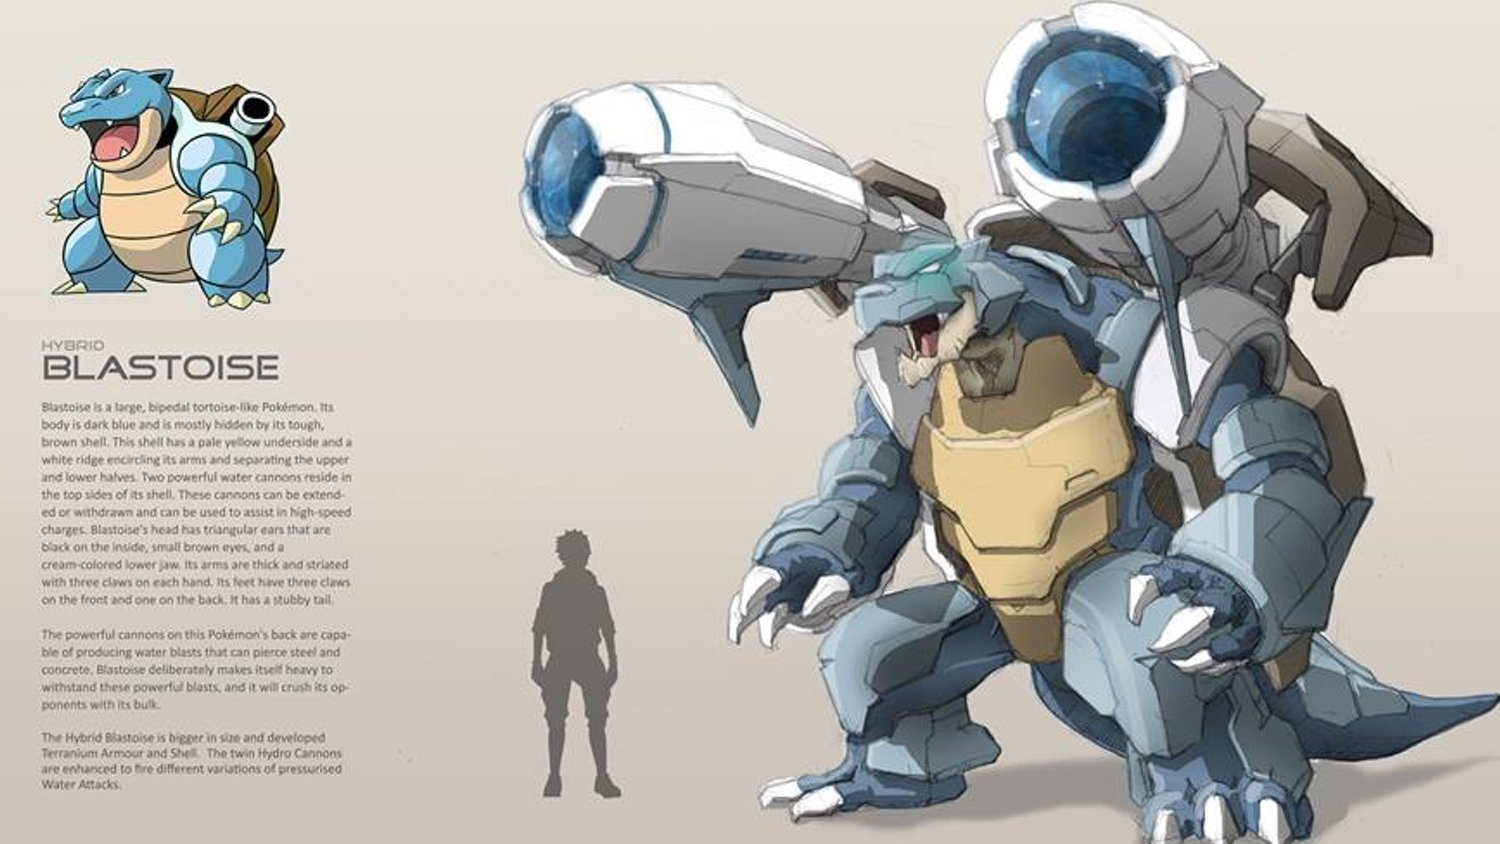 The Post Pokemon Characters Get A Badass Metal Armored Hybrid Upgrade In Fan Art Appeared First On